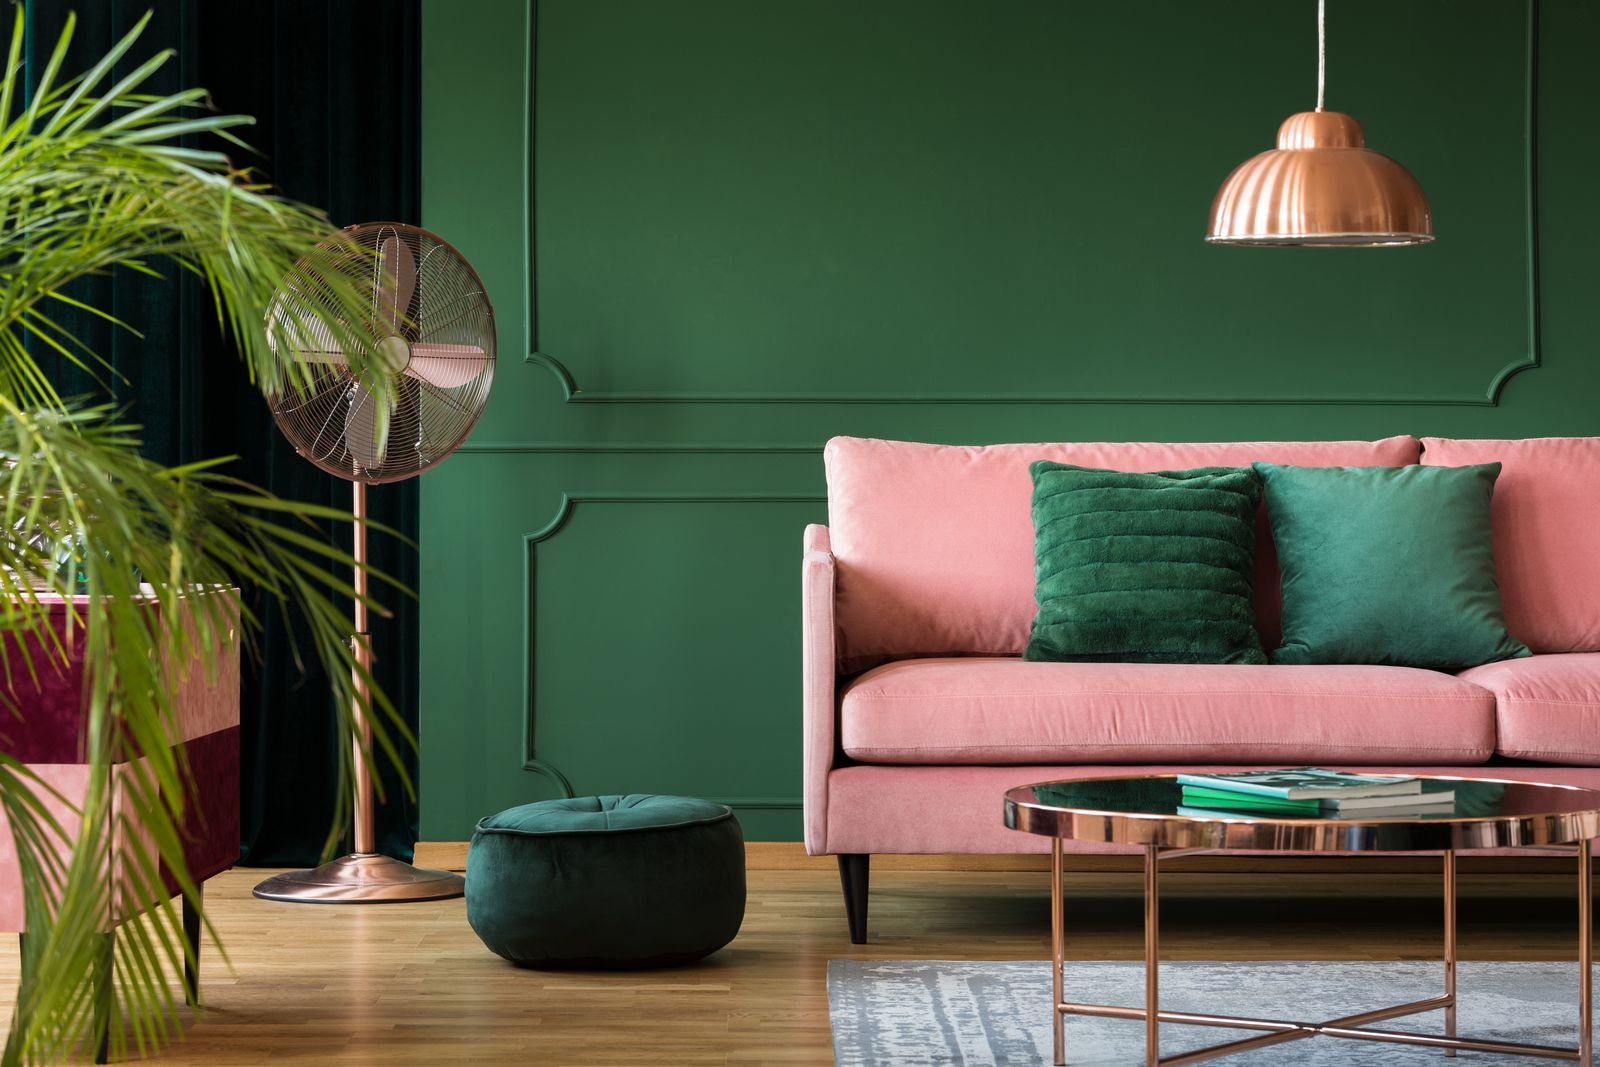 Copper lamp and table in a green living room interior. Real photo